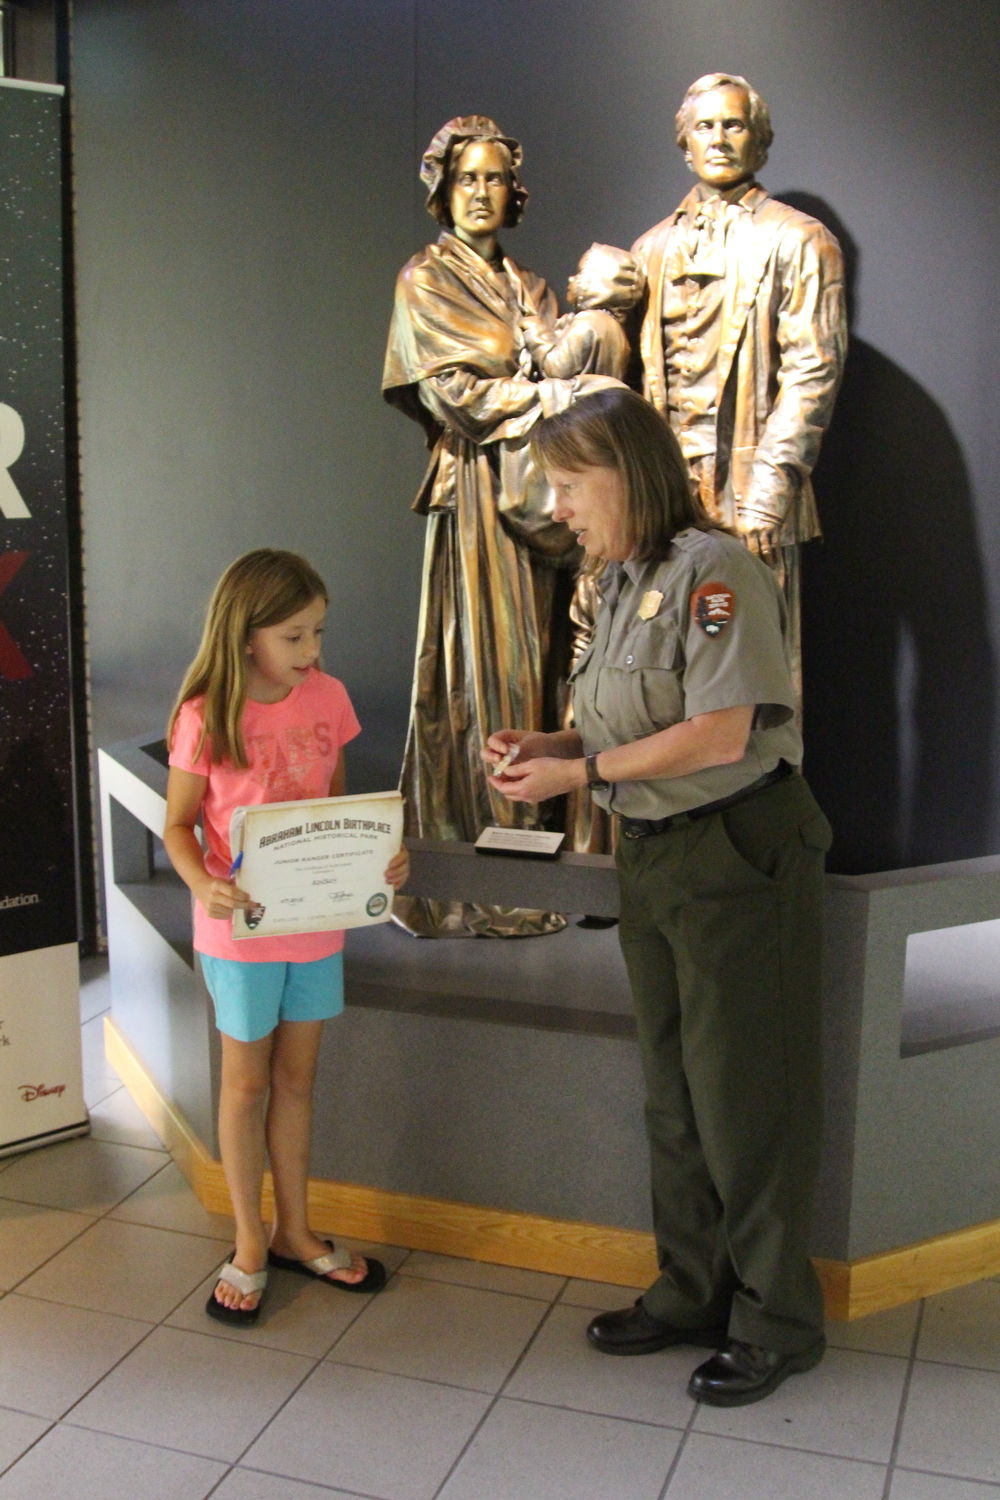 Petunia being certified a Jr. Ranger!